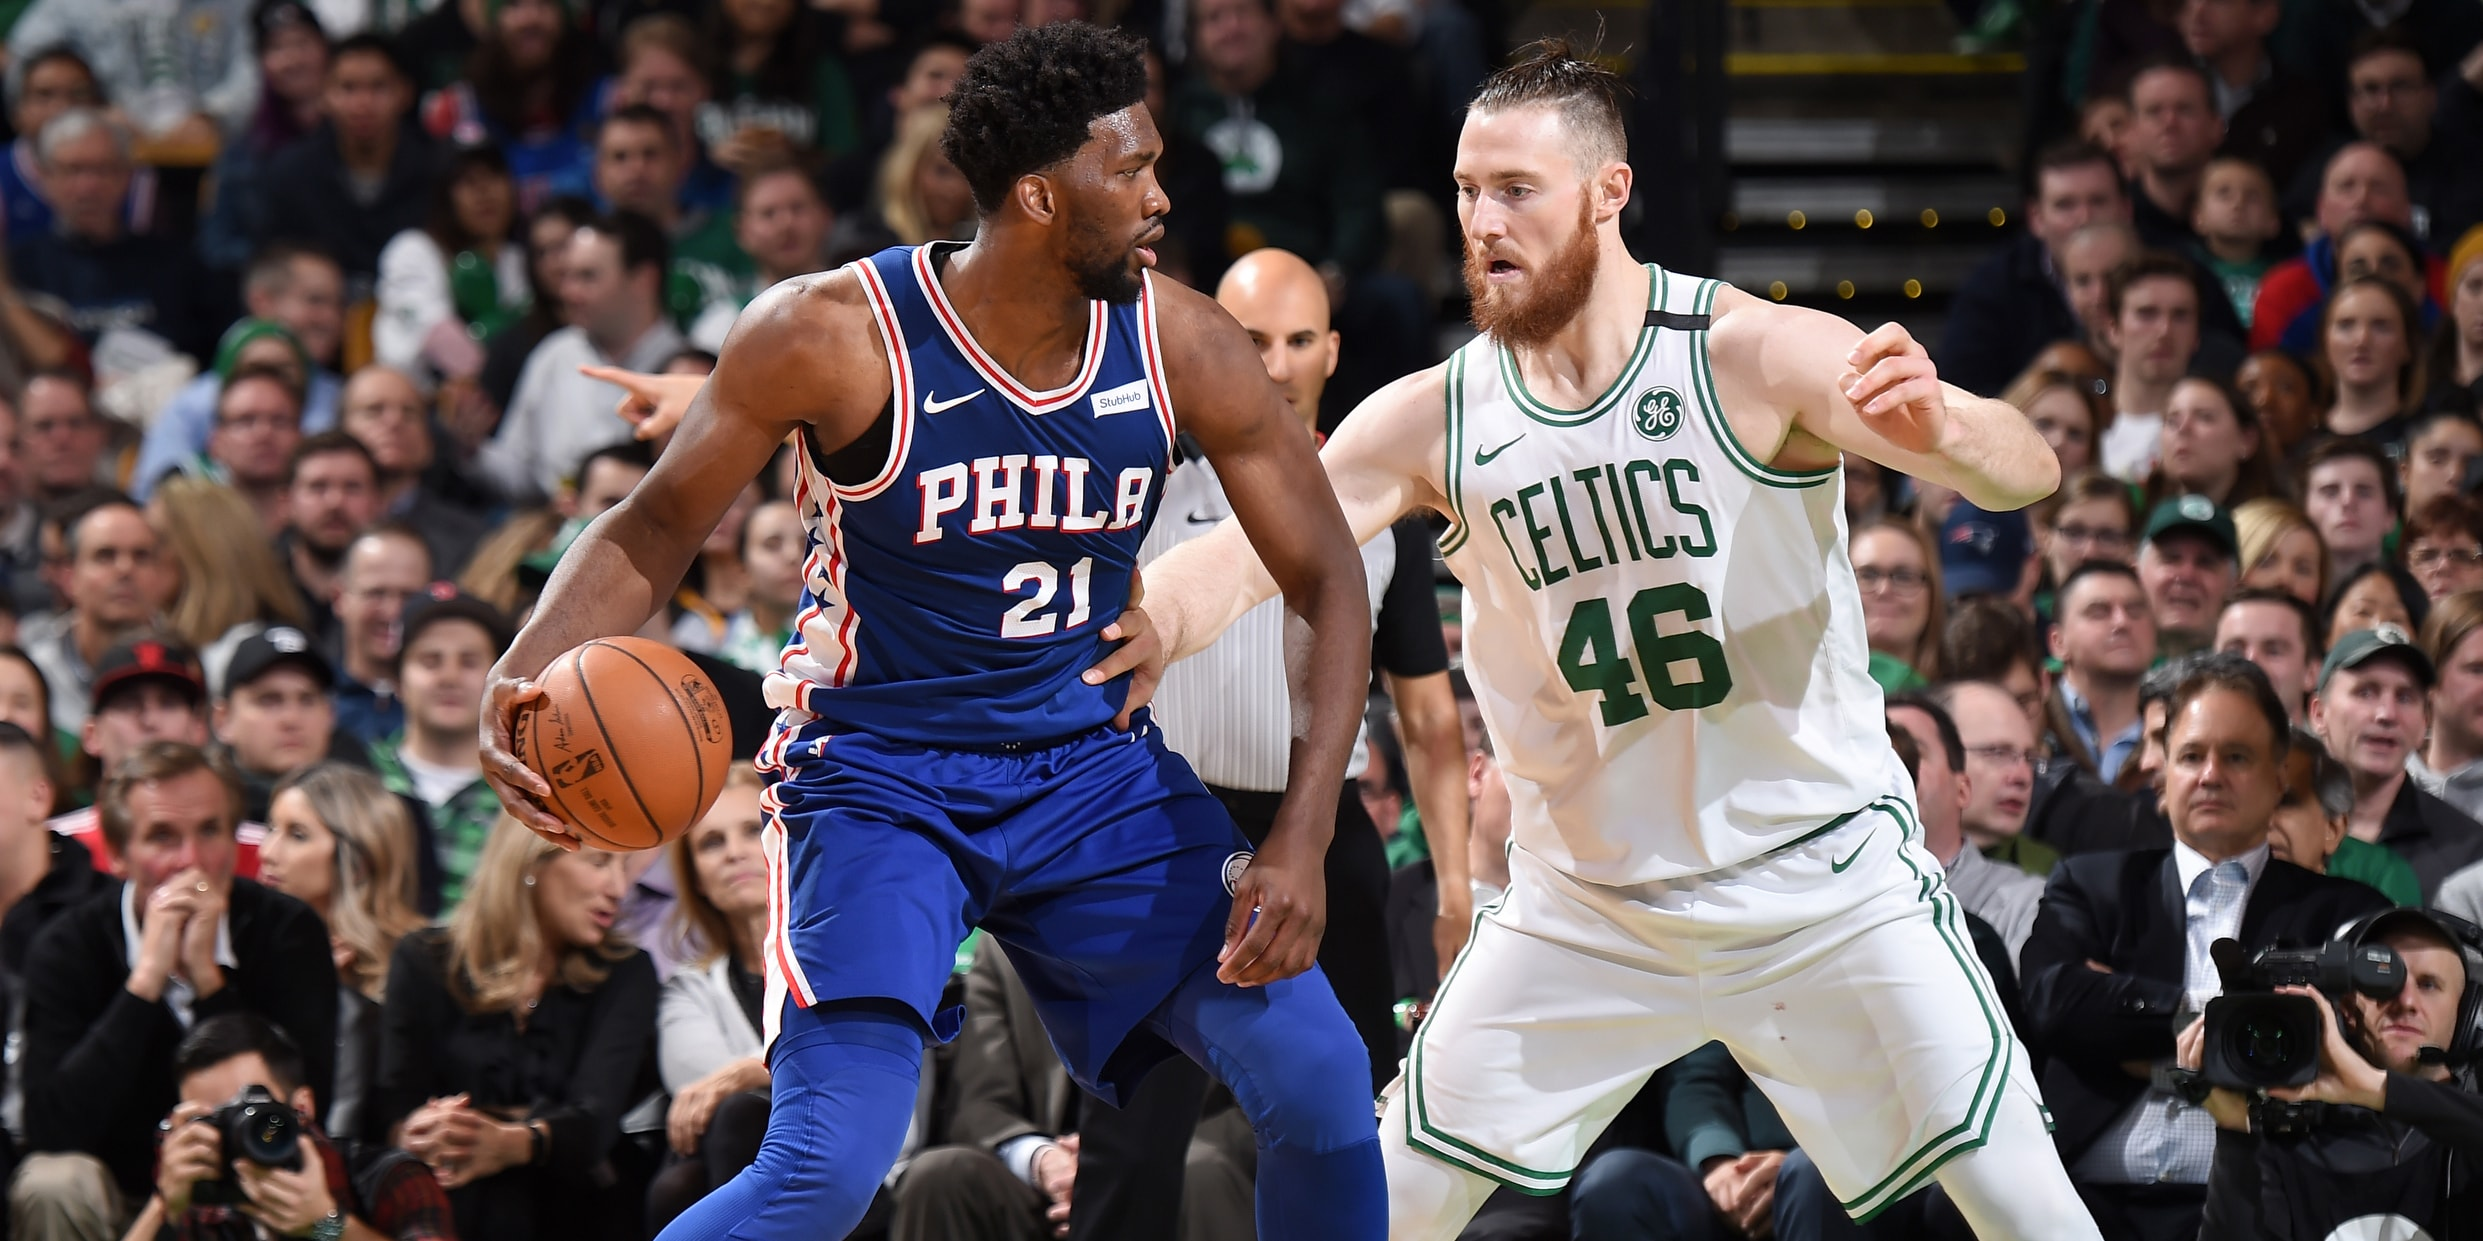 In Review | Coveted Win Over Celtics Caps Season's First Half | Philadelphia 76ers